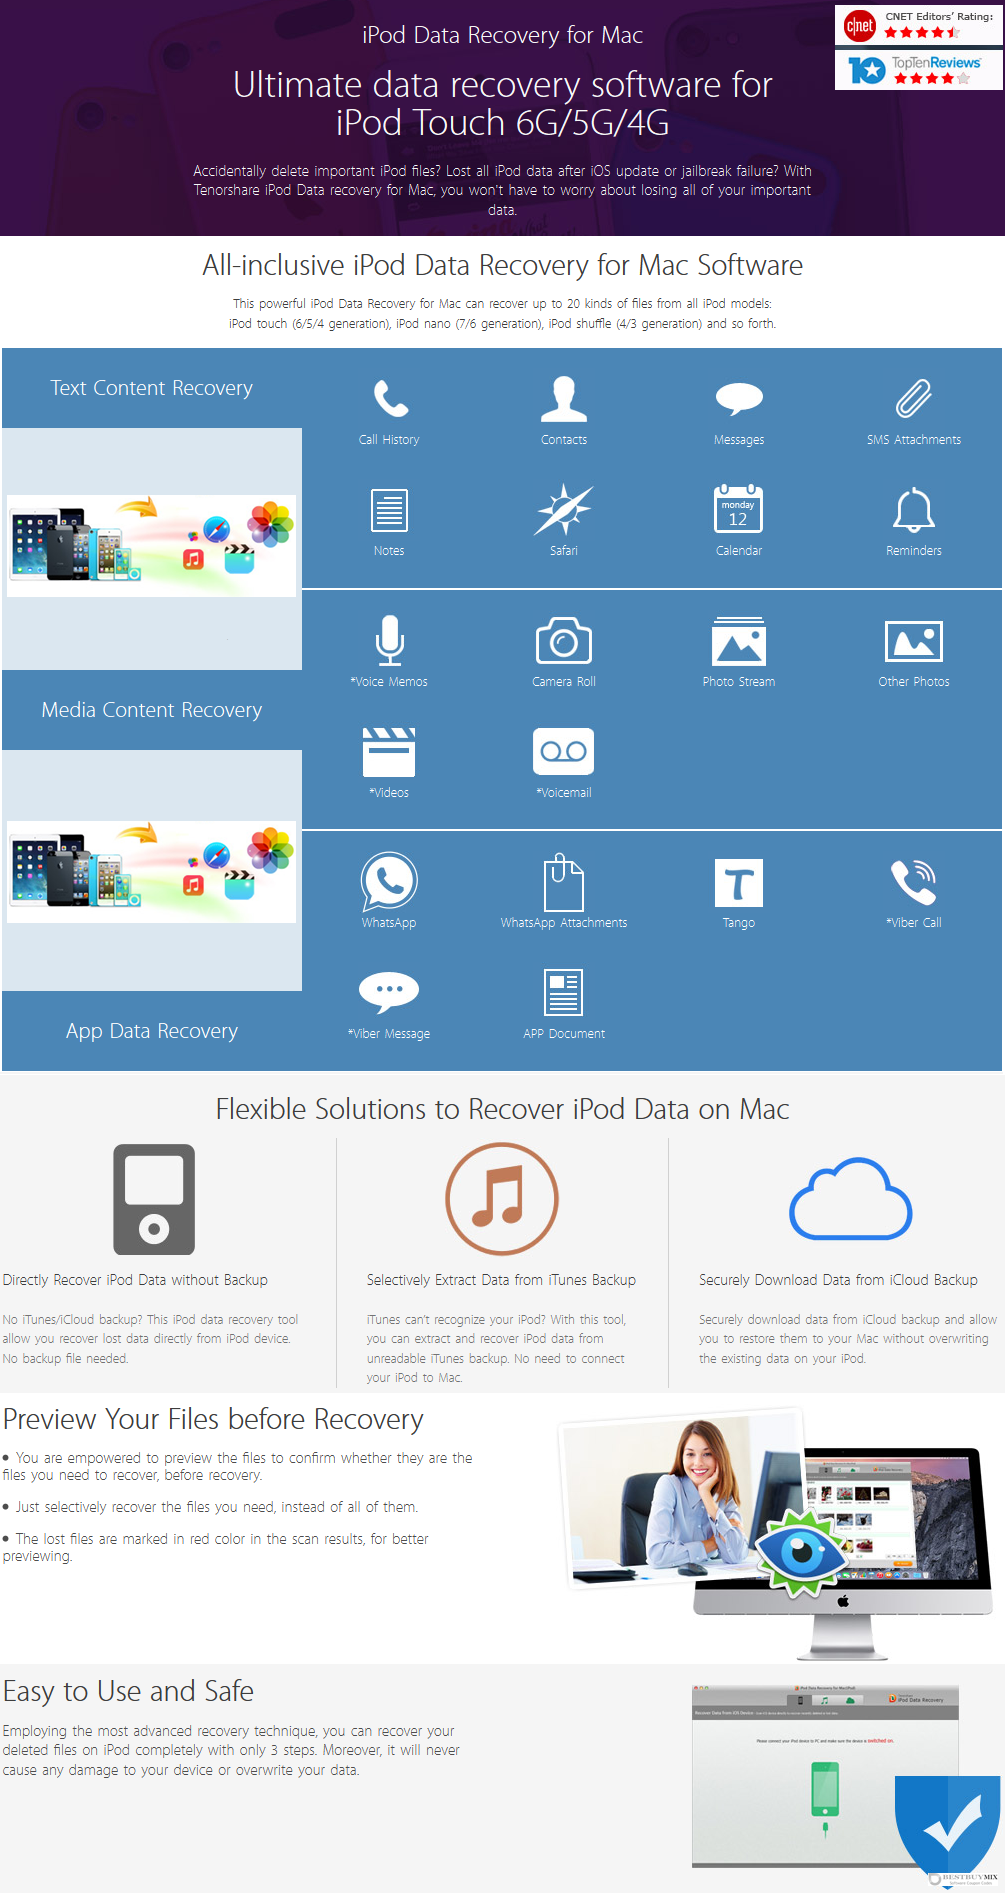 Tenorshare iPod Data Recovery for Mac Discount Coupon Code